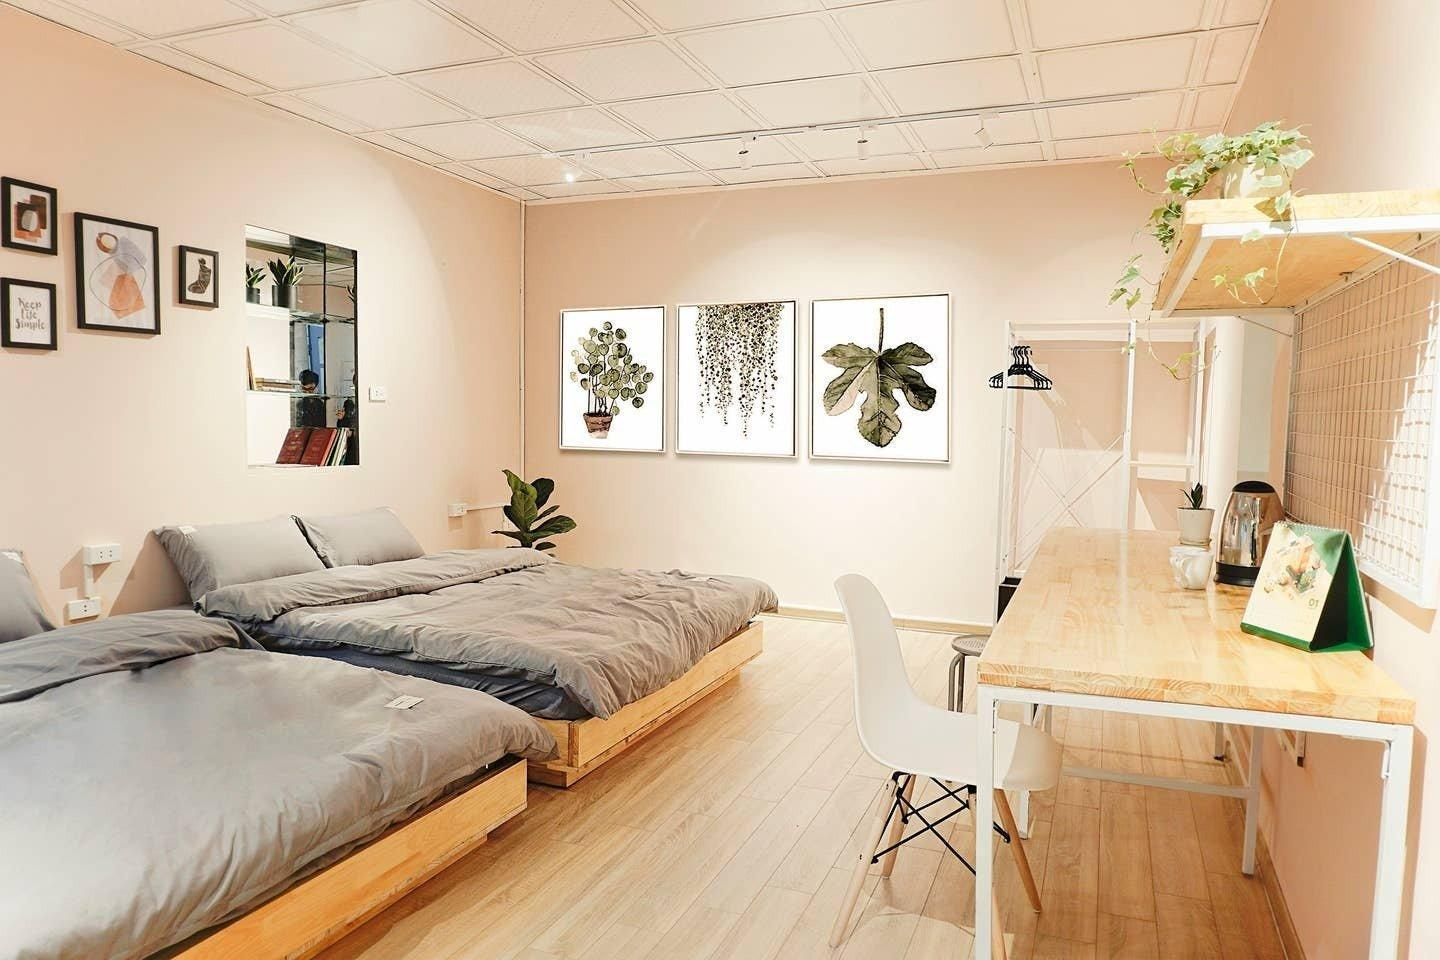 The Alley House  4  Old Quater Hanoi  1 BR 2 BEDS.